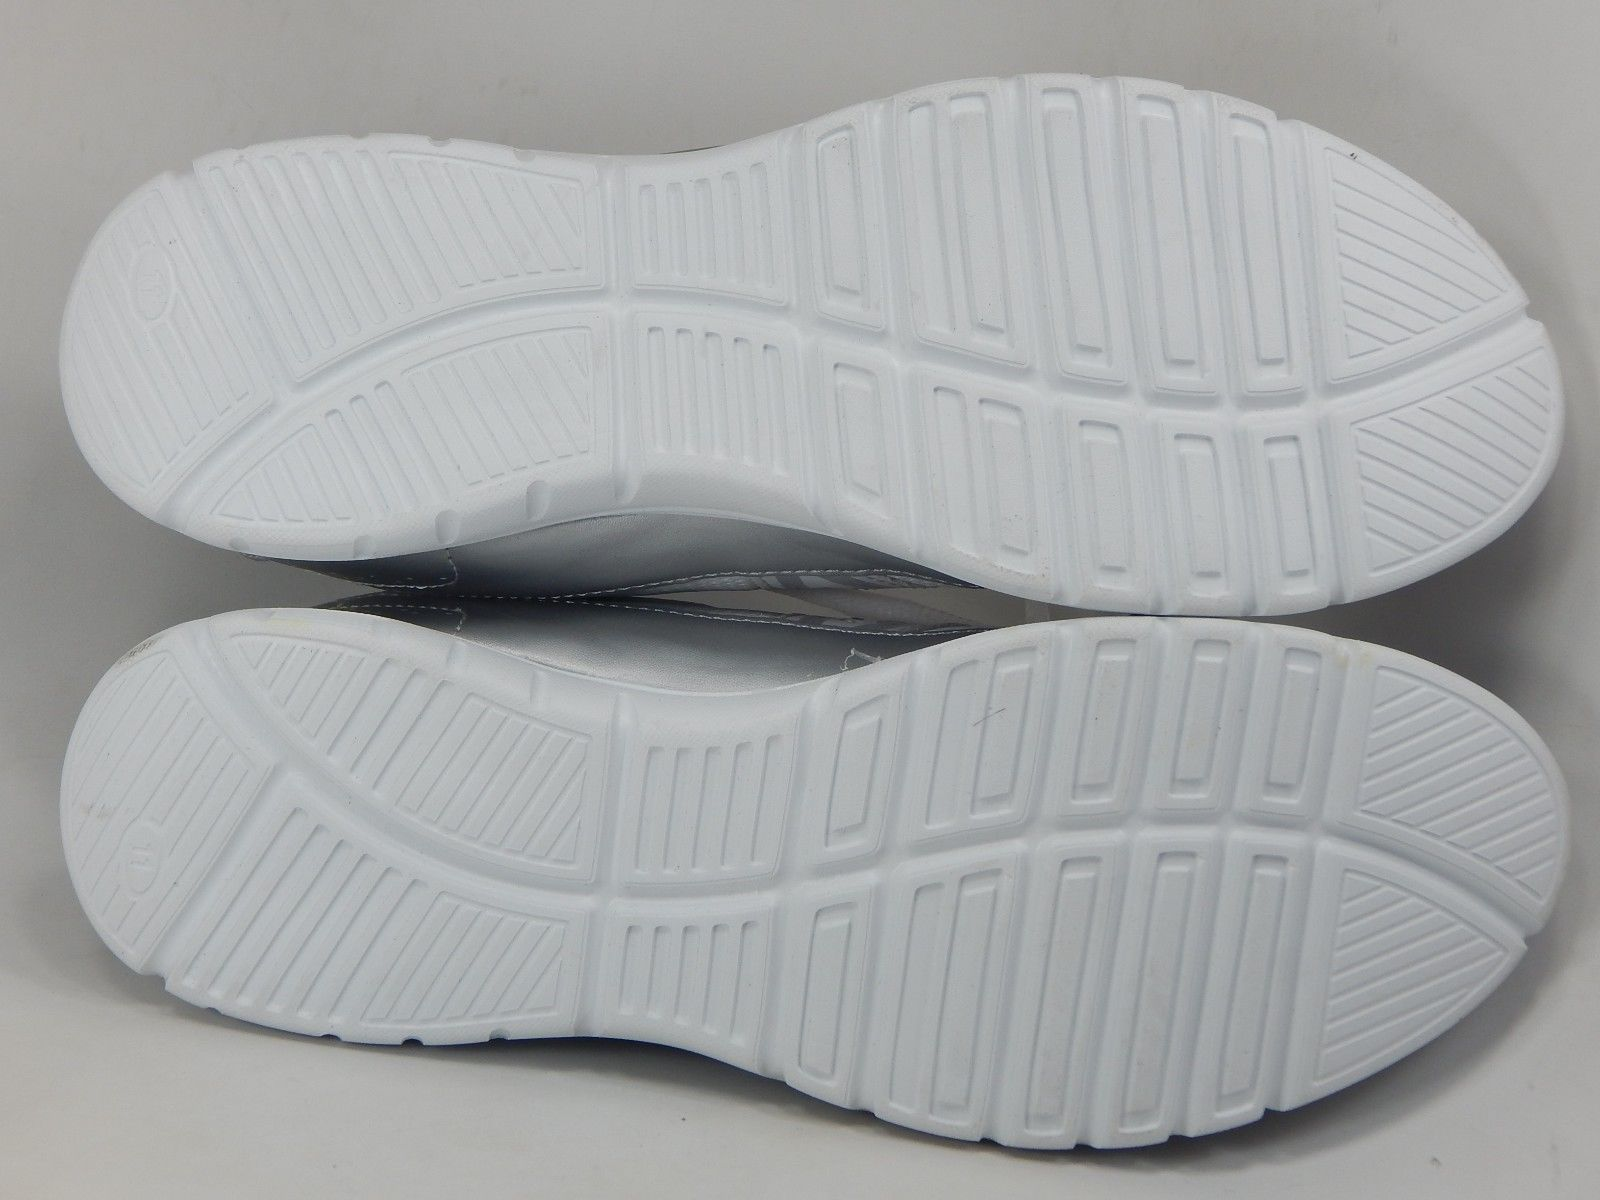 Essential Size US 11 M (B) EU 43 Women's Athletic Walking / Running Shoes White